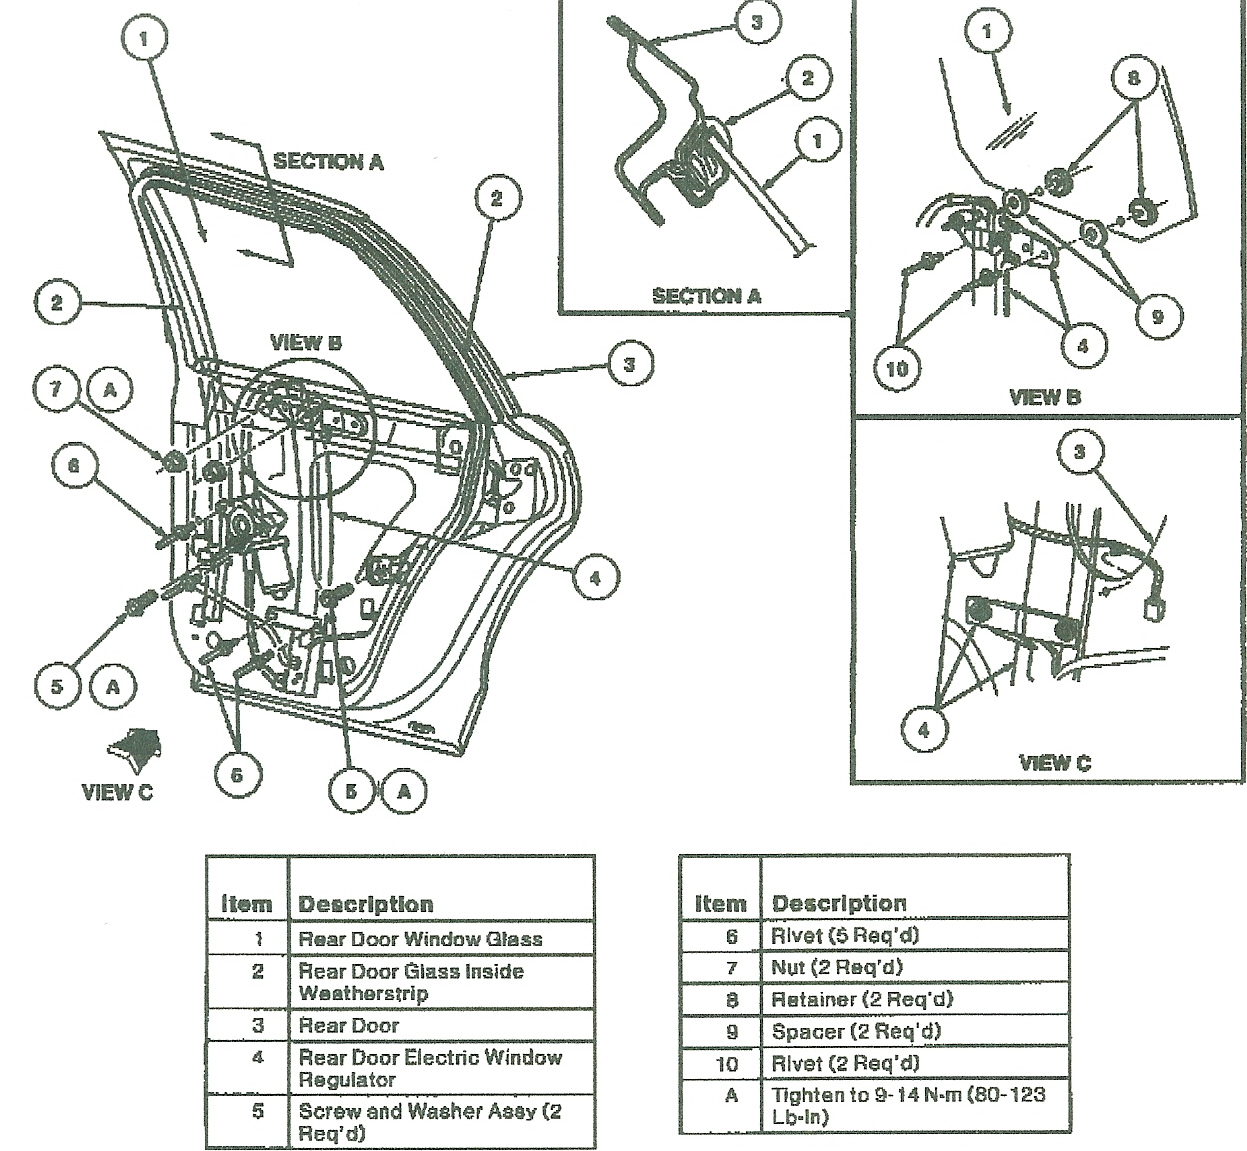 2000 Lincoln Town Car Door Diagram Trusted Wiring 97 Fuse Box Window Regulator Cable Image Details Panel 1991